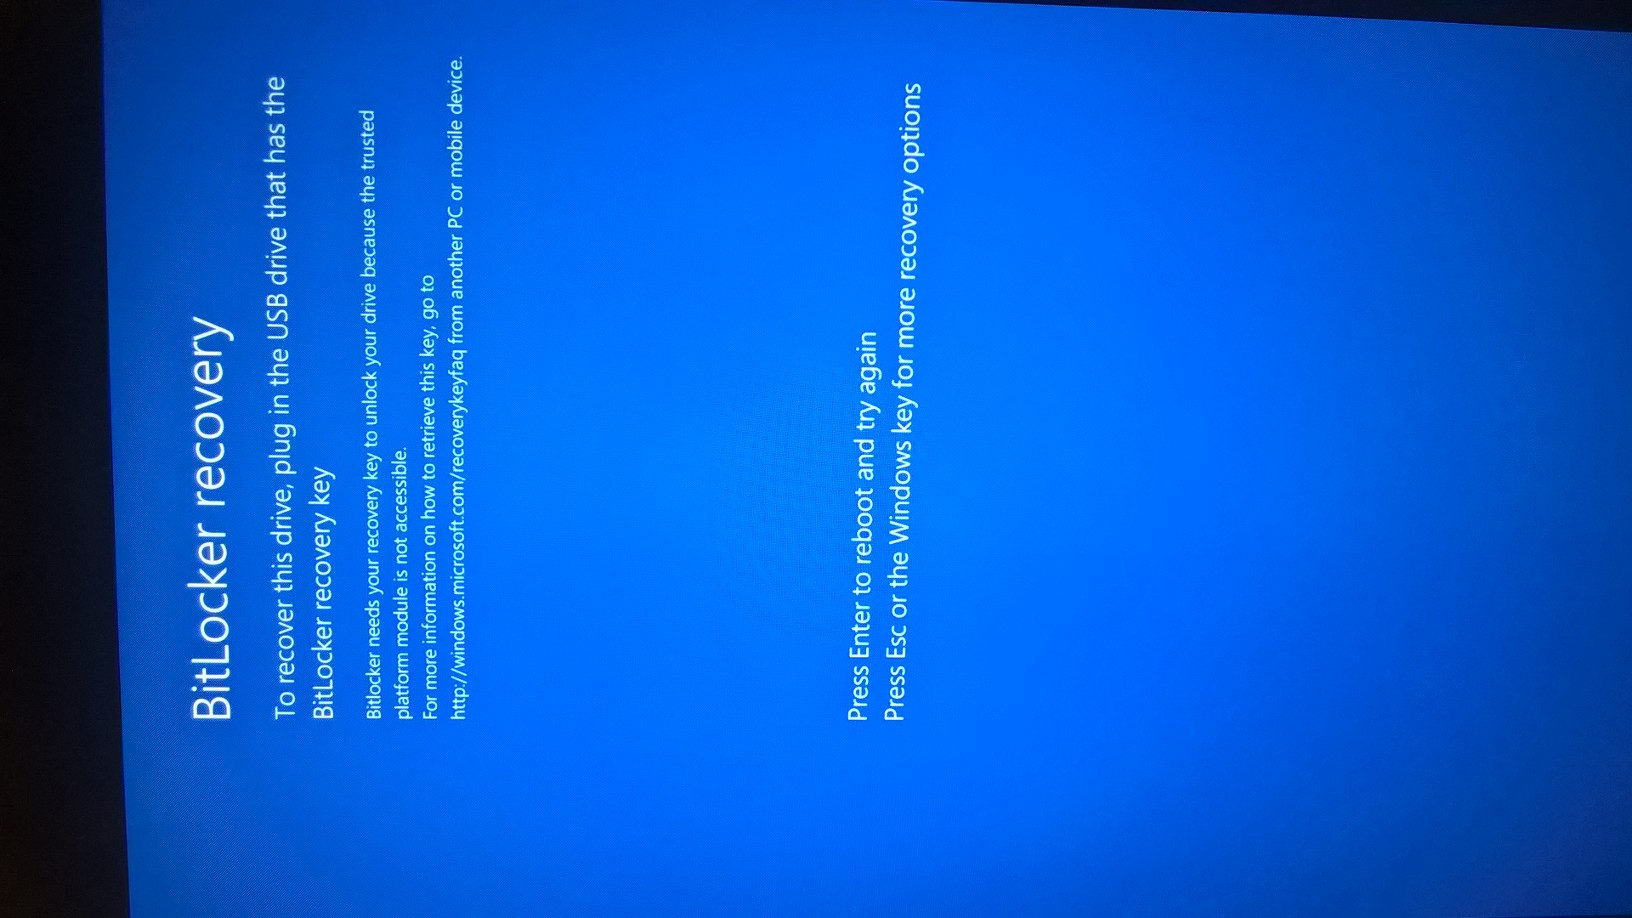 Bluescreen with BitLocker recovery page and no action possib